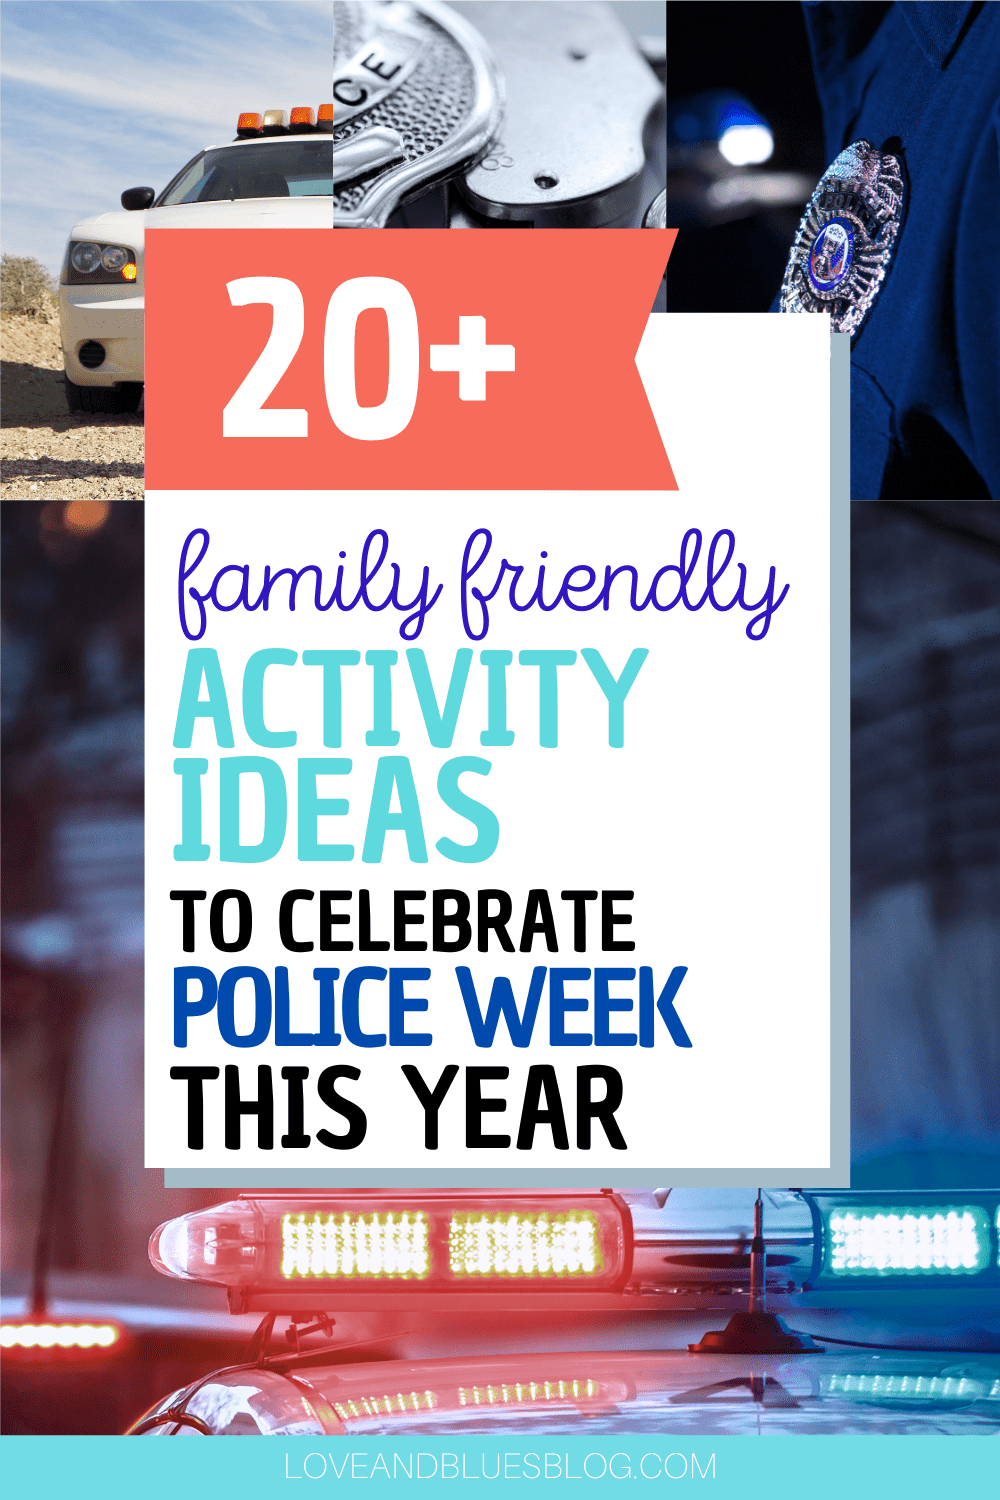 Great ways to celebrate national police week - fun for the whole family!